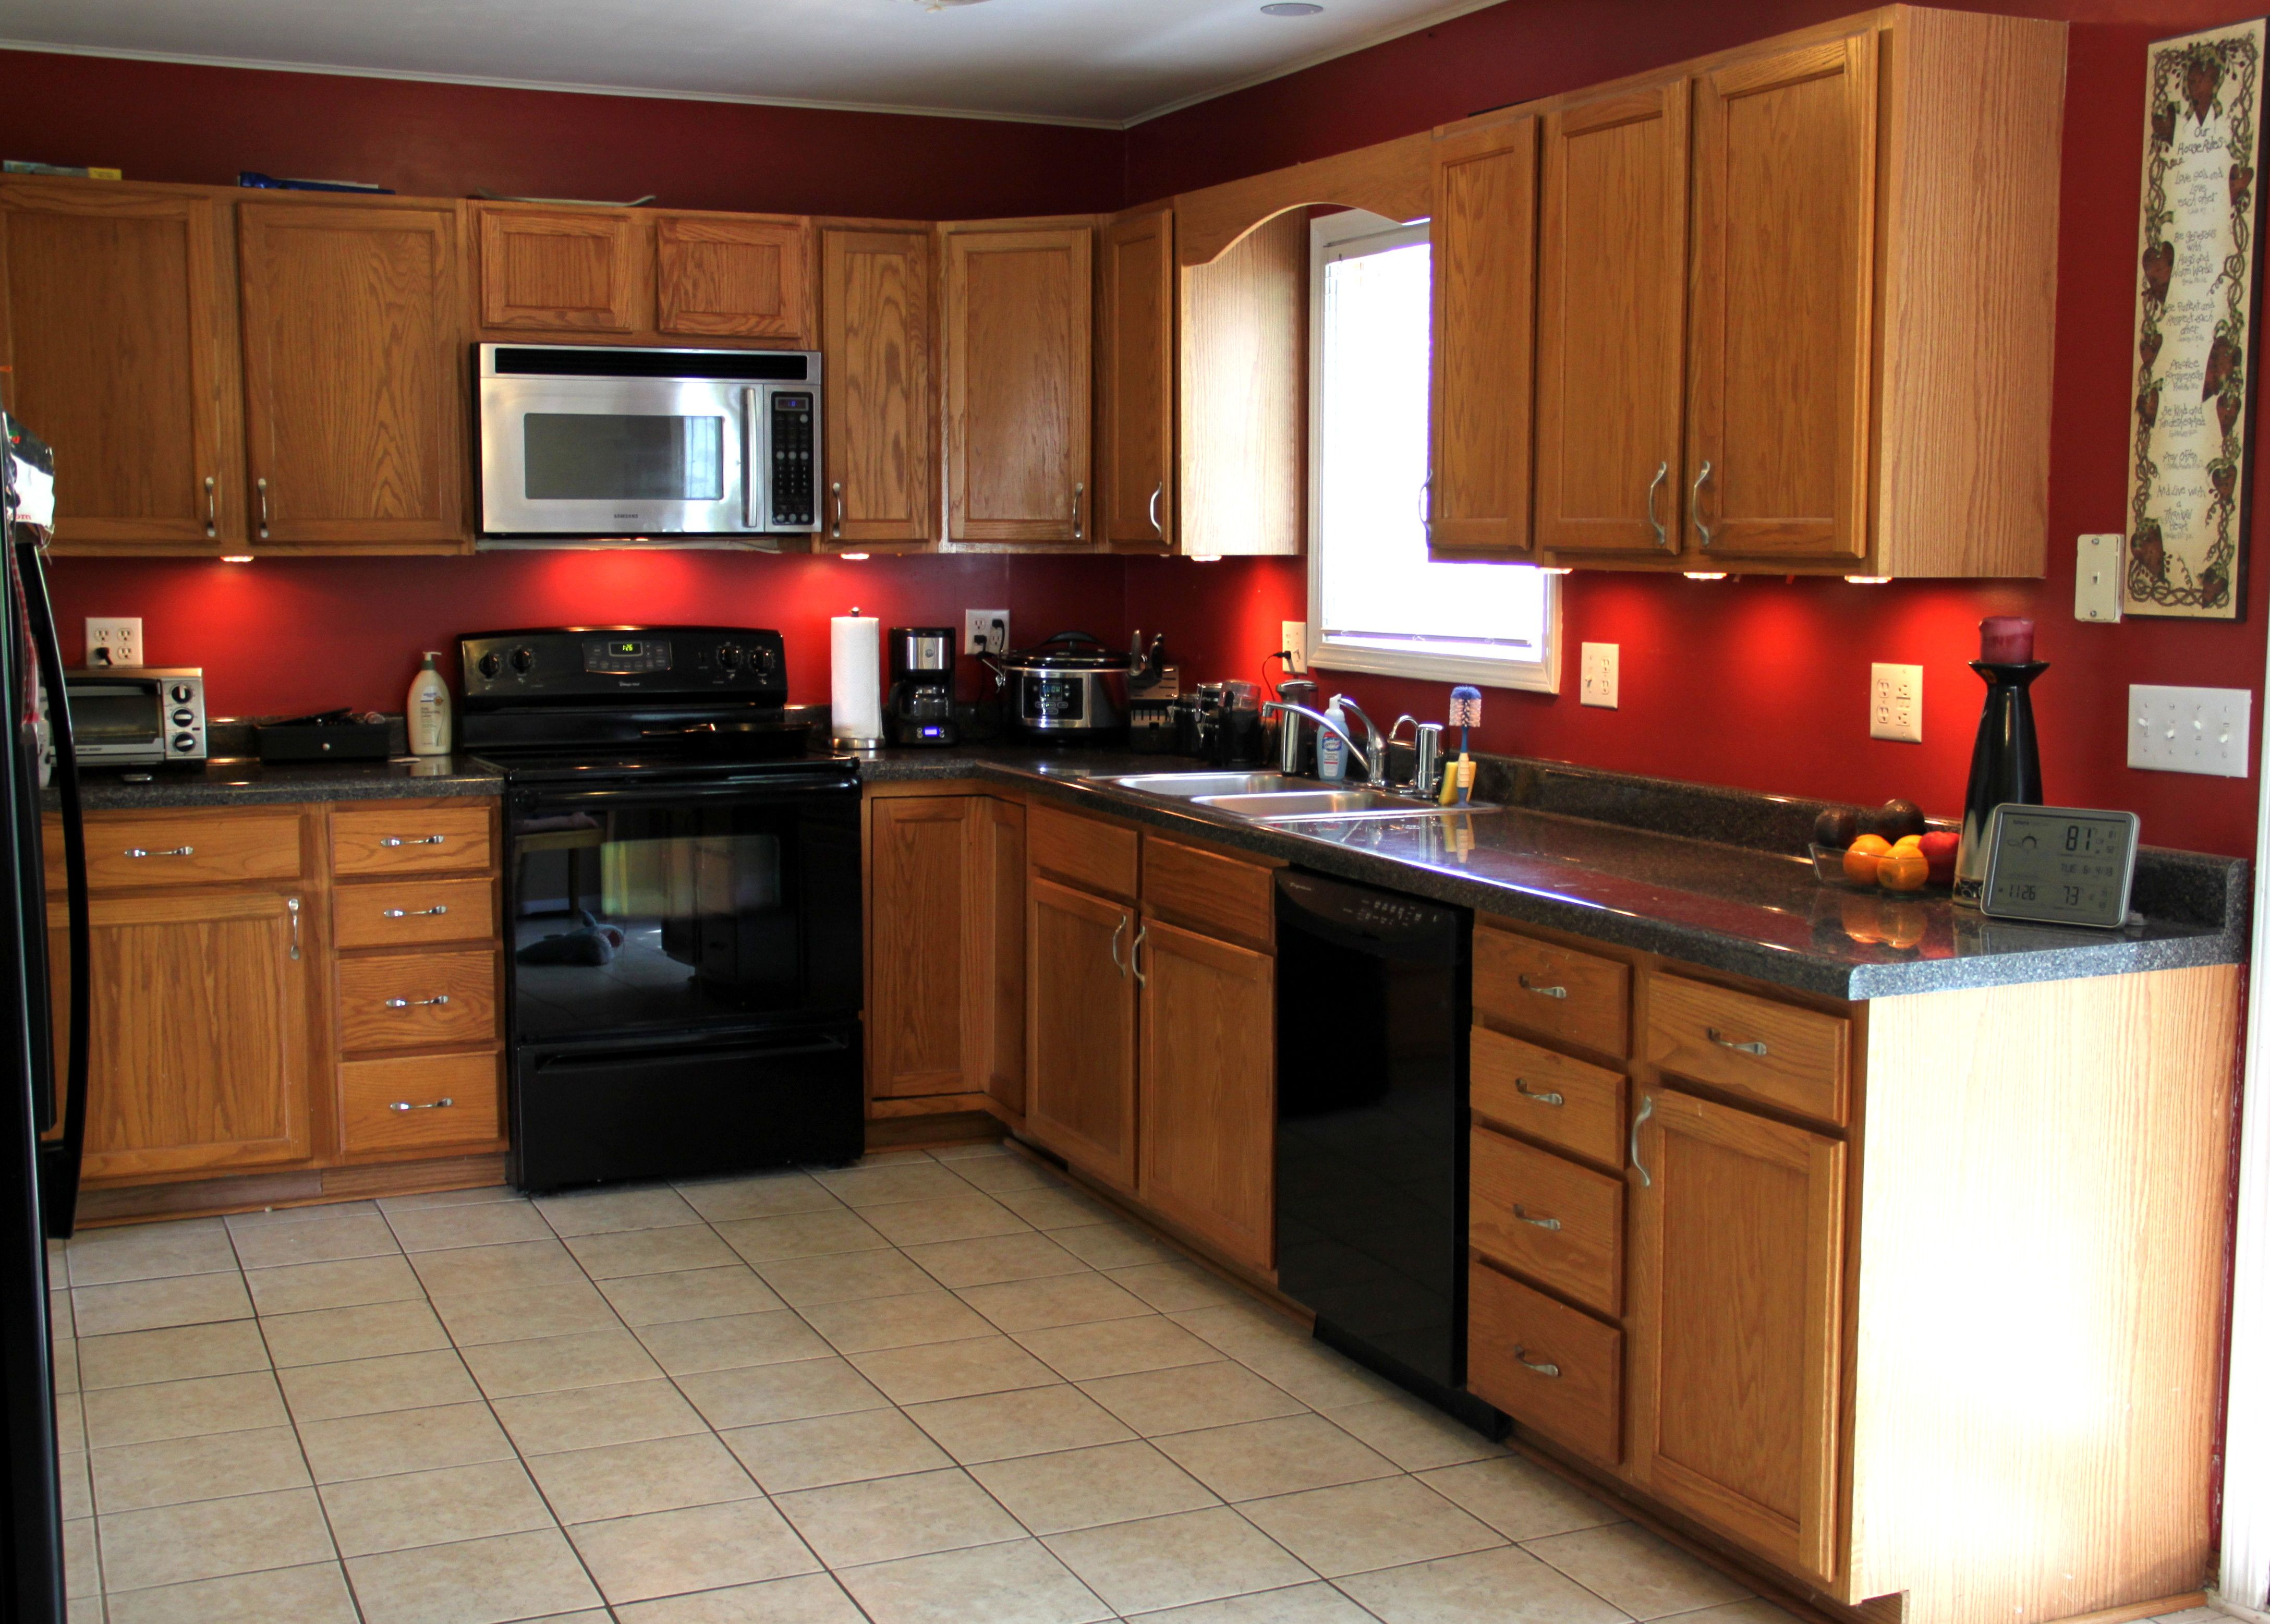 How To Paint Cabinets Oak Kitchen Cabinets Red Kitchen Cabinets Red Kitchen Walls